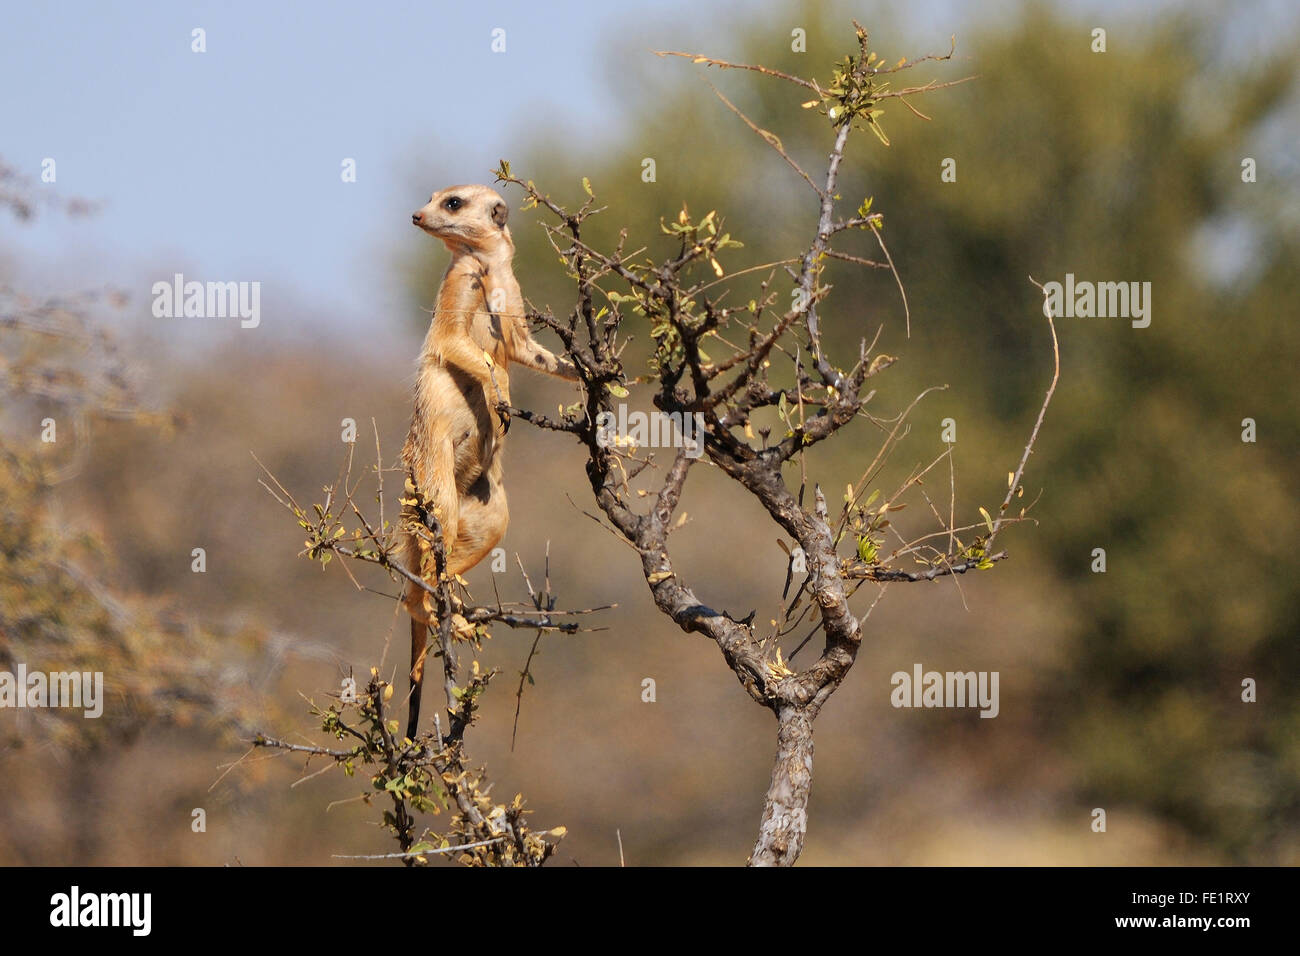 The meerkat or suricate, Suricata suricatta, is a small mammal belonging to the mongoose family. This photo was - Stock Image